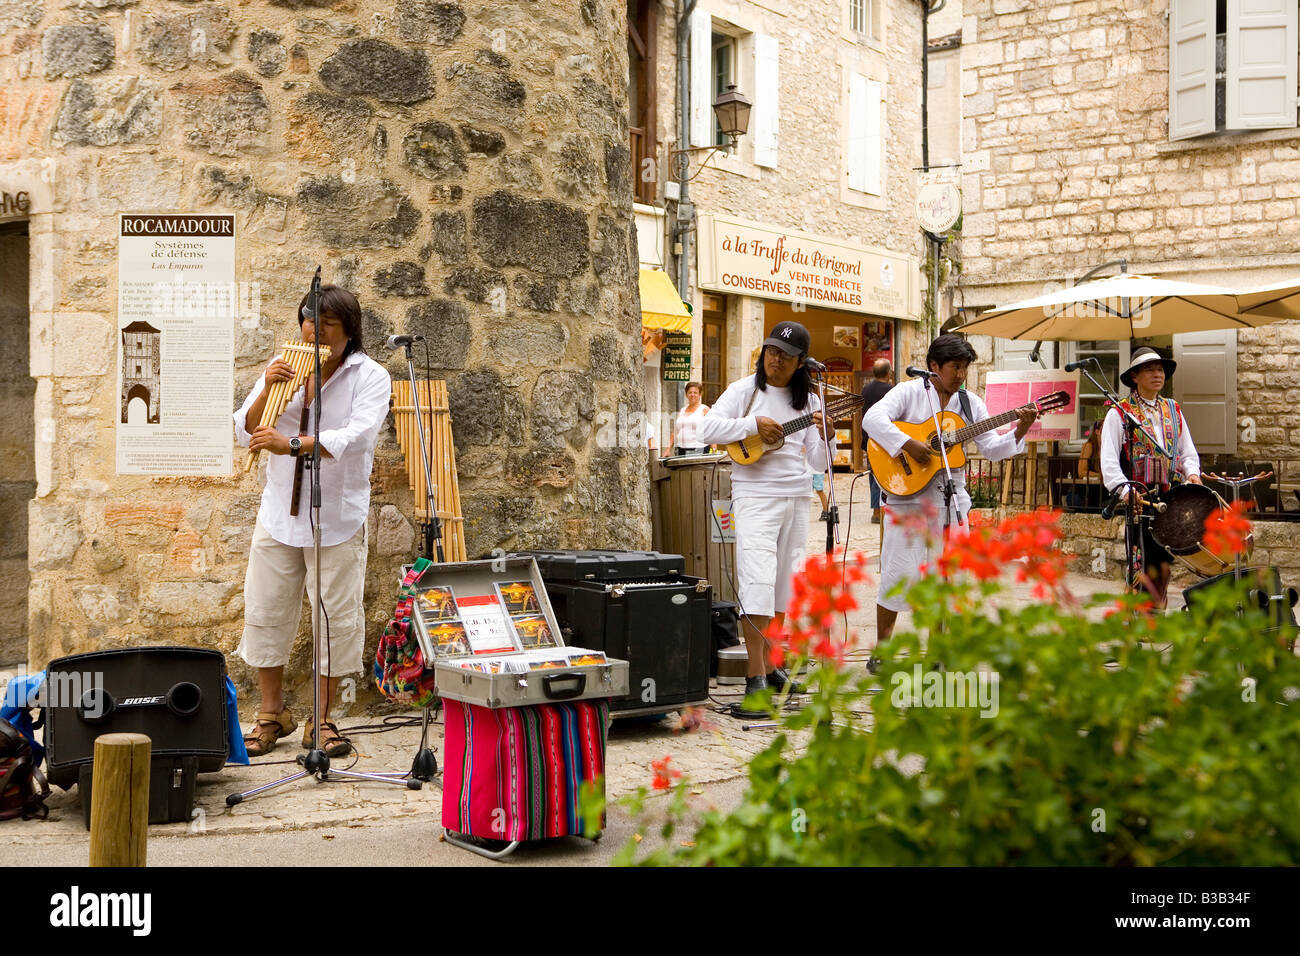 South American musicians playing panpipes and guitars in the mediavel town of Rocamadour in the Lot region of France Stock Photo